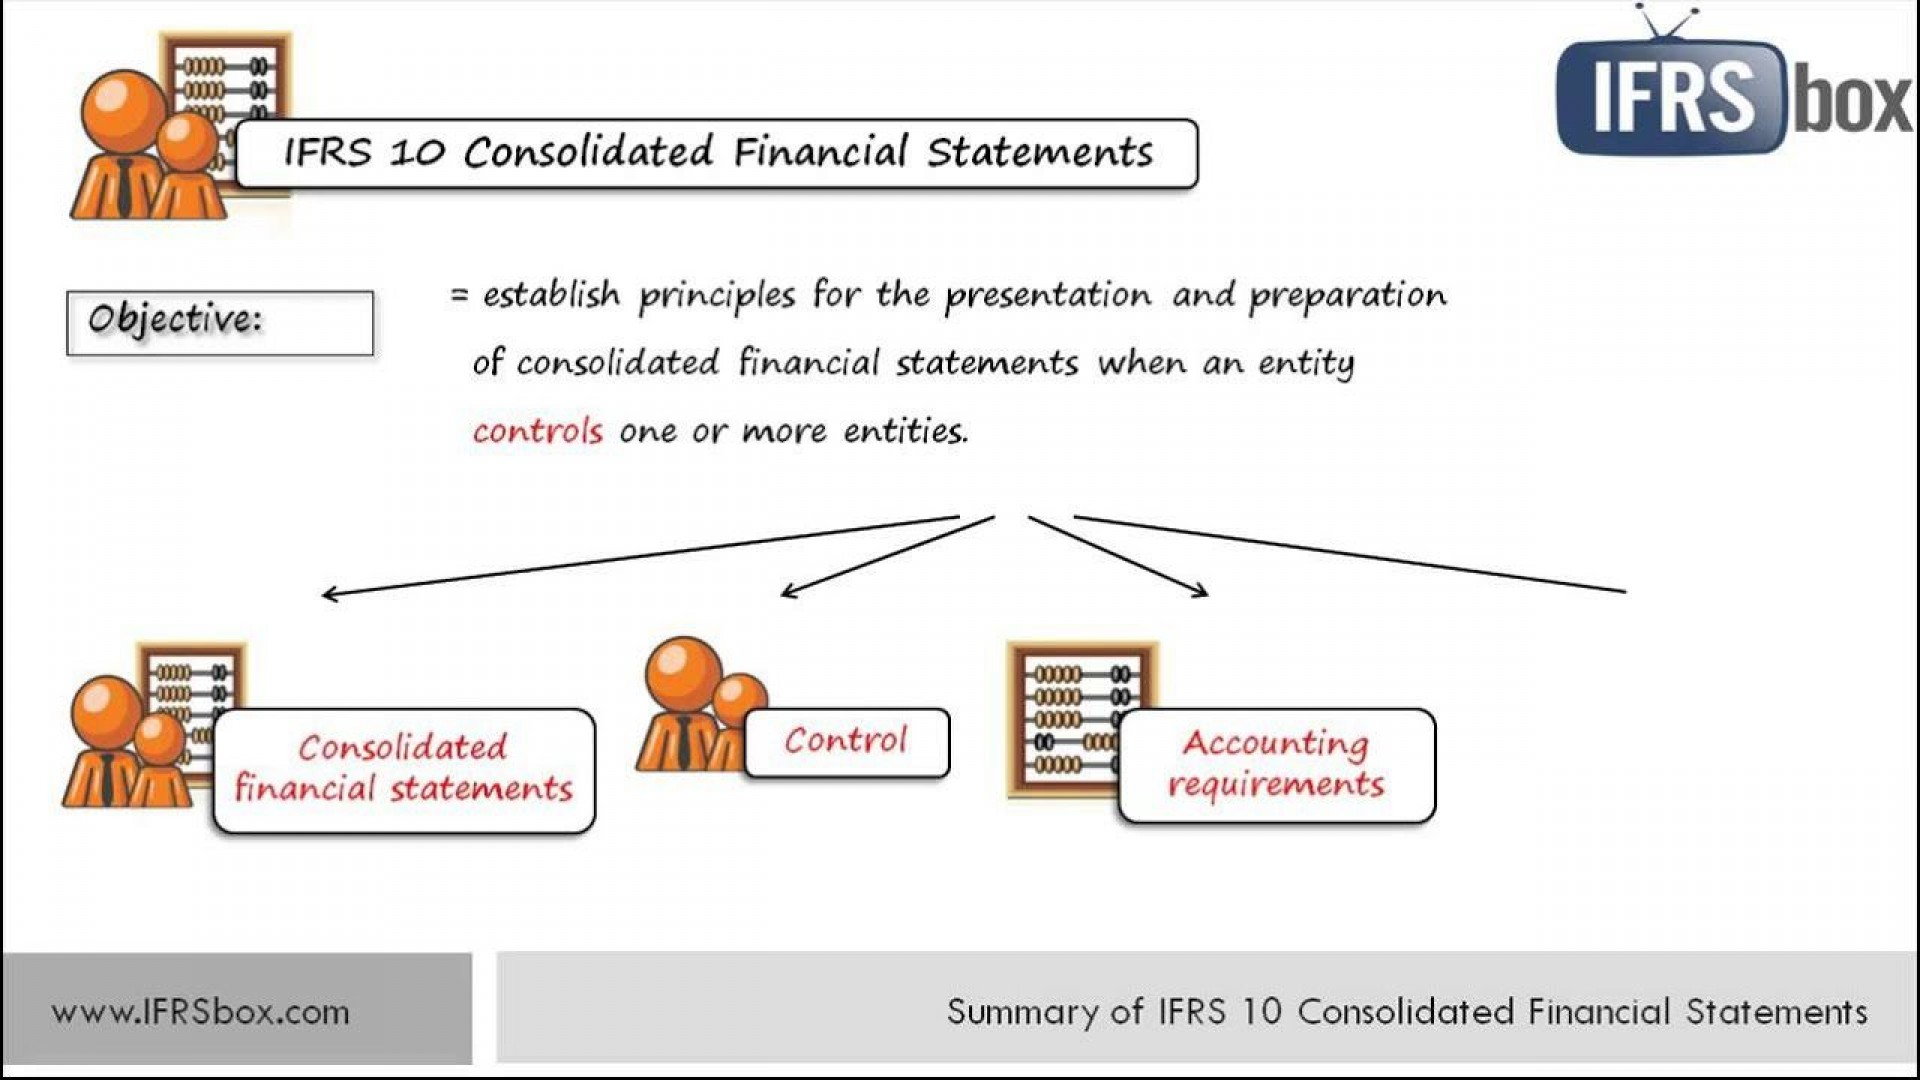 003 Stupendou Ifr Income Statement Format Excel Image 1920